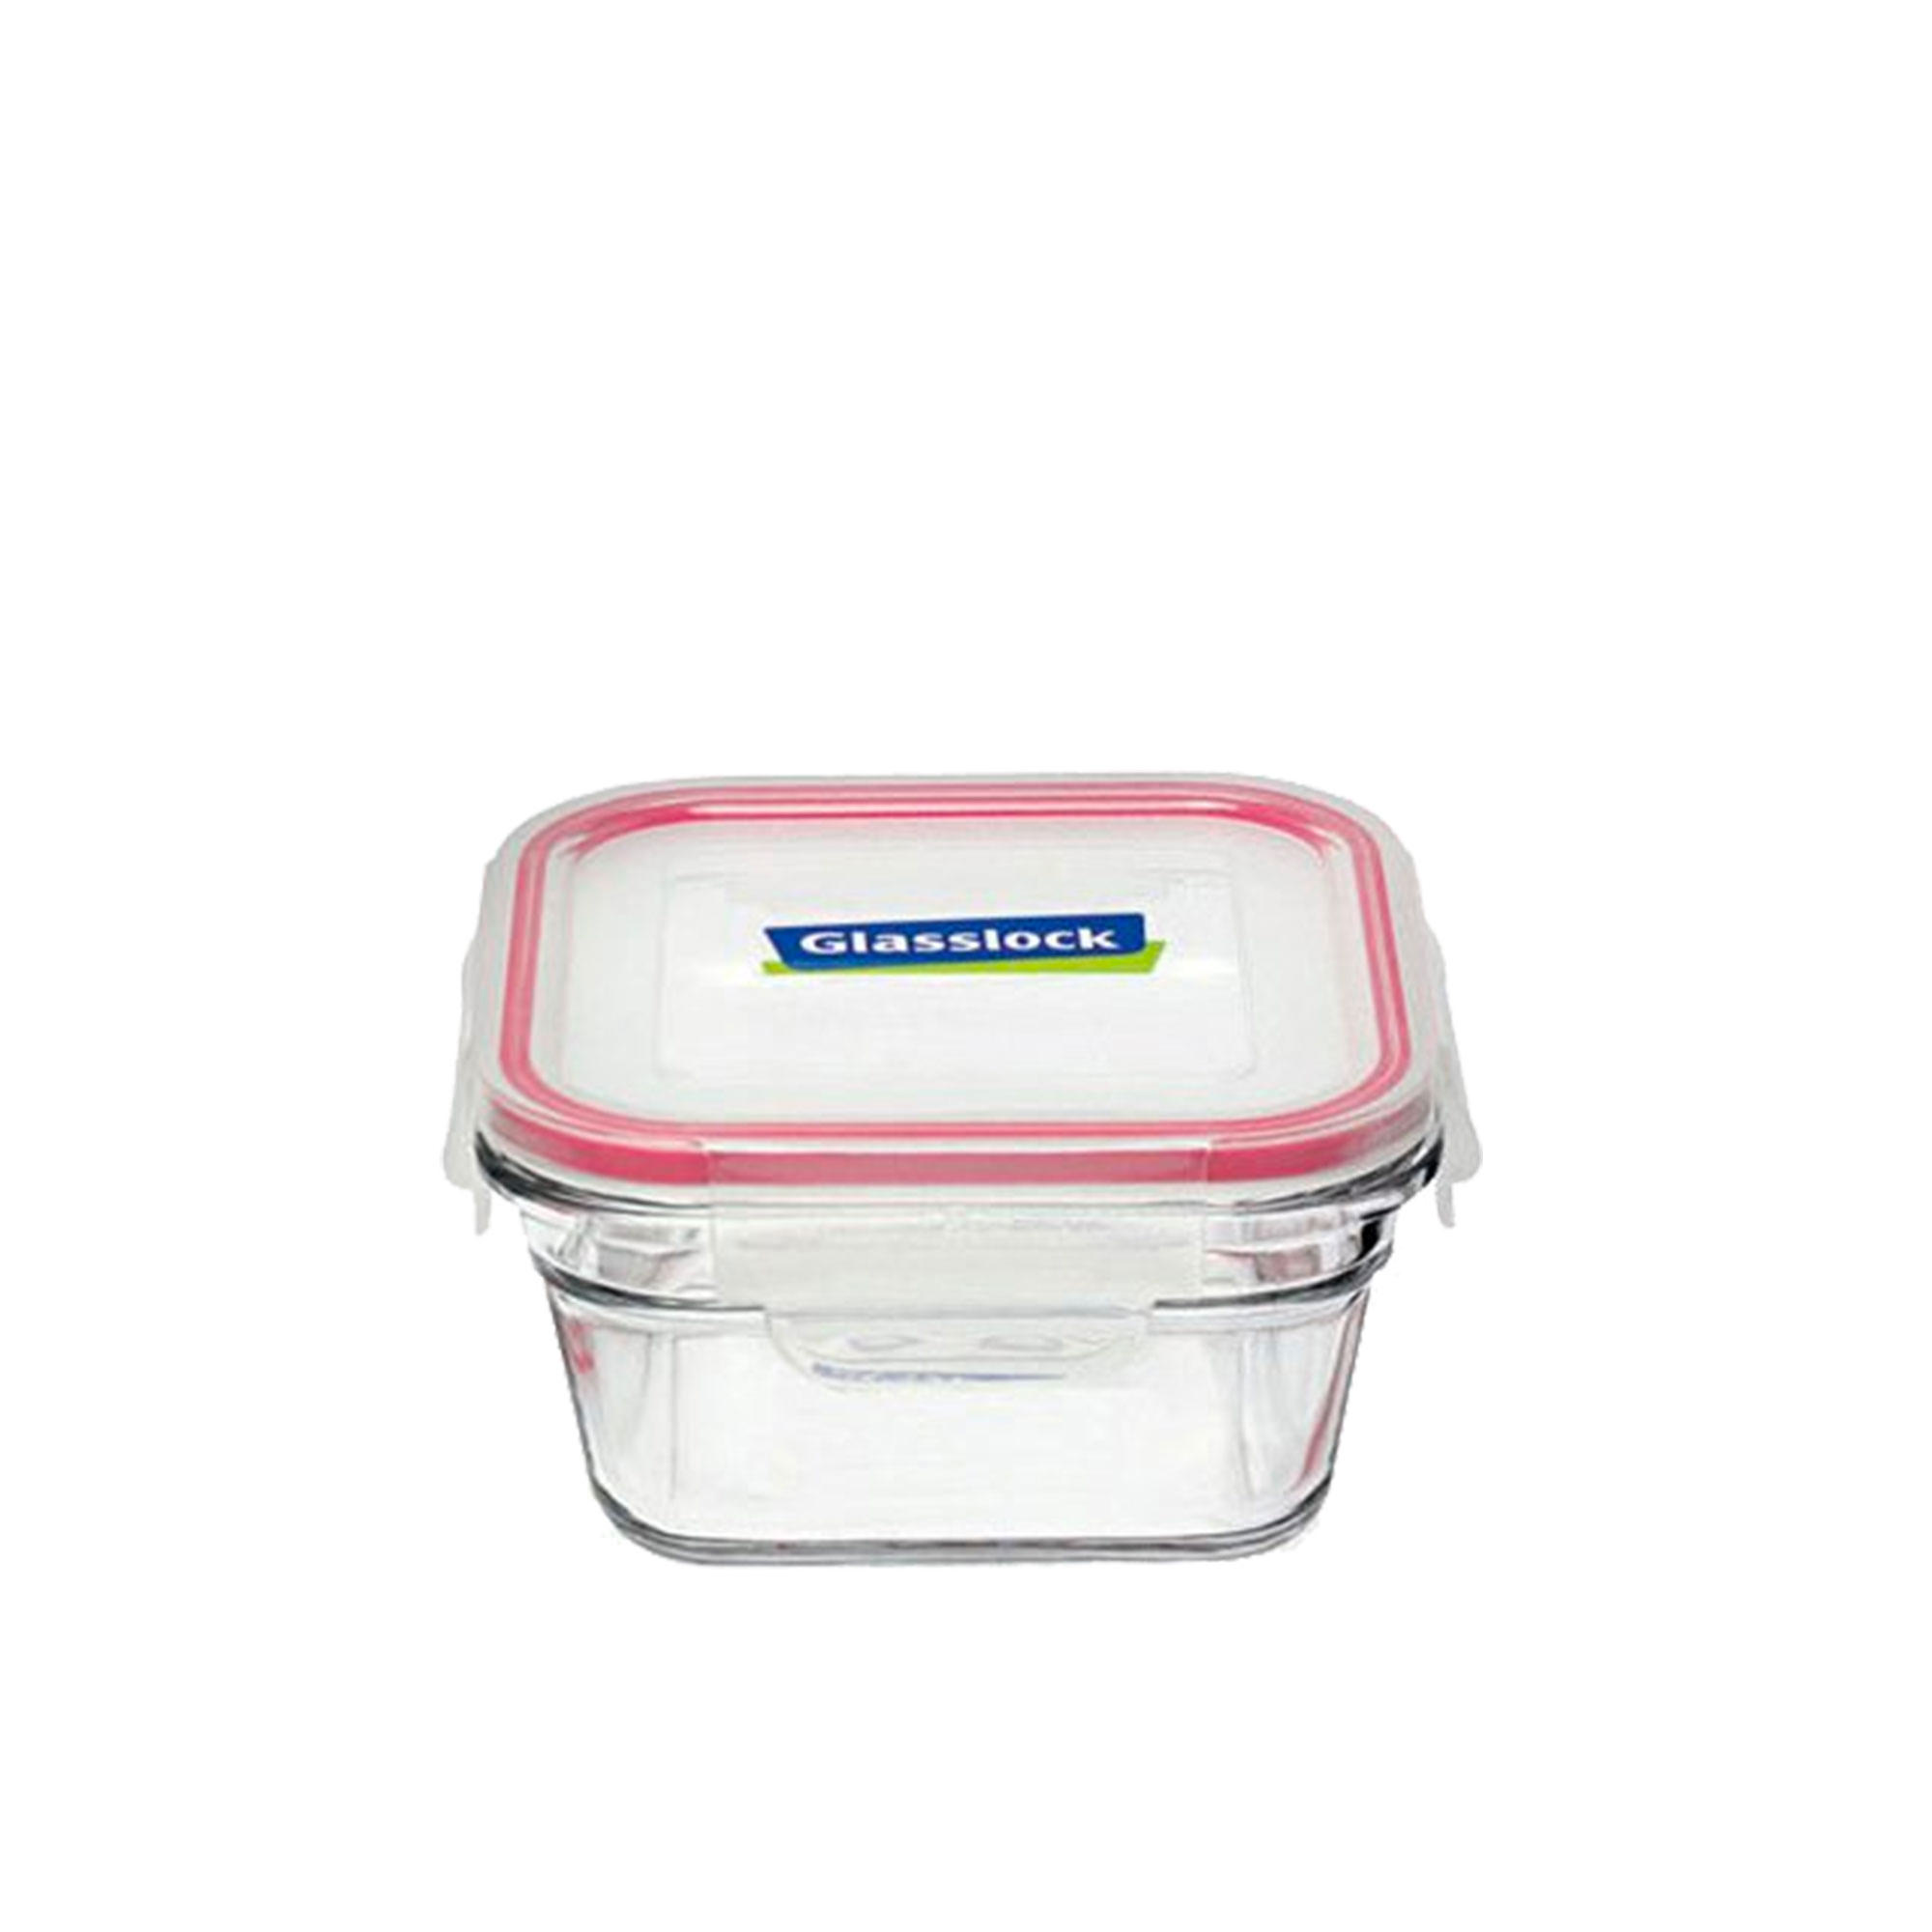 Glasslock Oven Safe Square Container 400ml